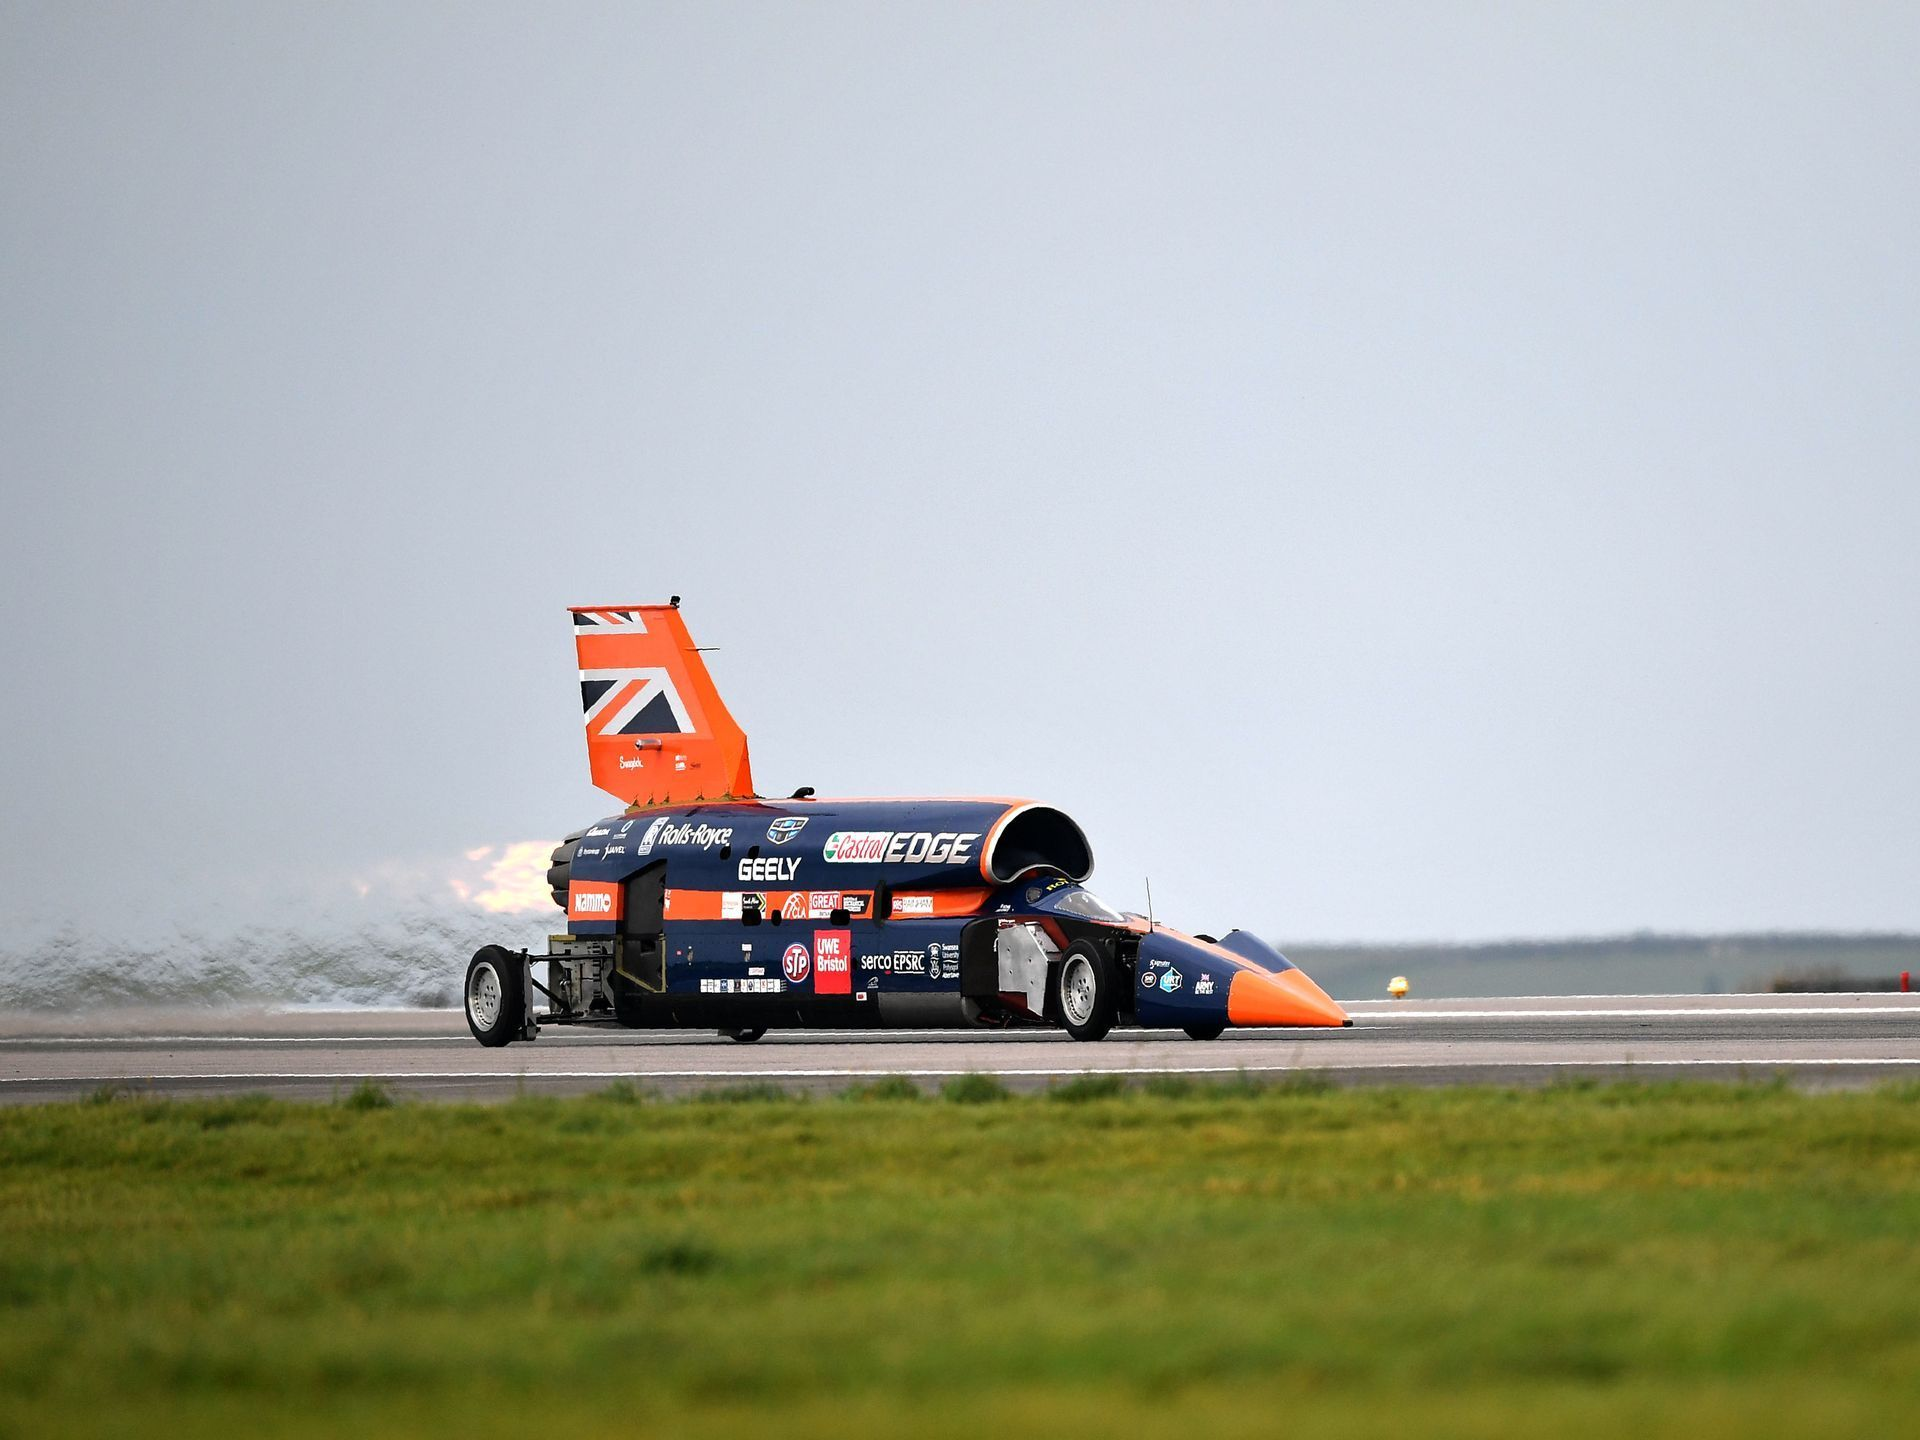 The Bloodhound Supersonic Car Driven By Andy Green Bloodhound Car Car Makes